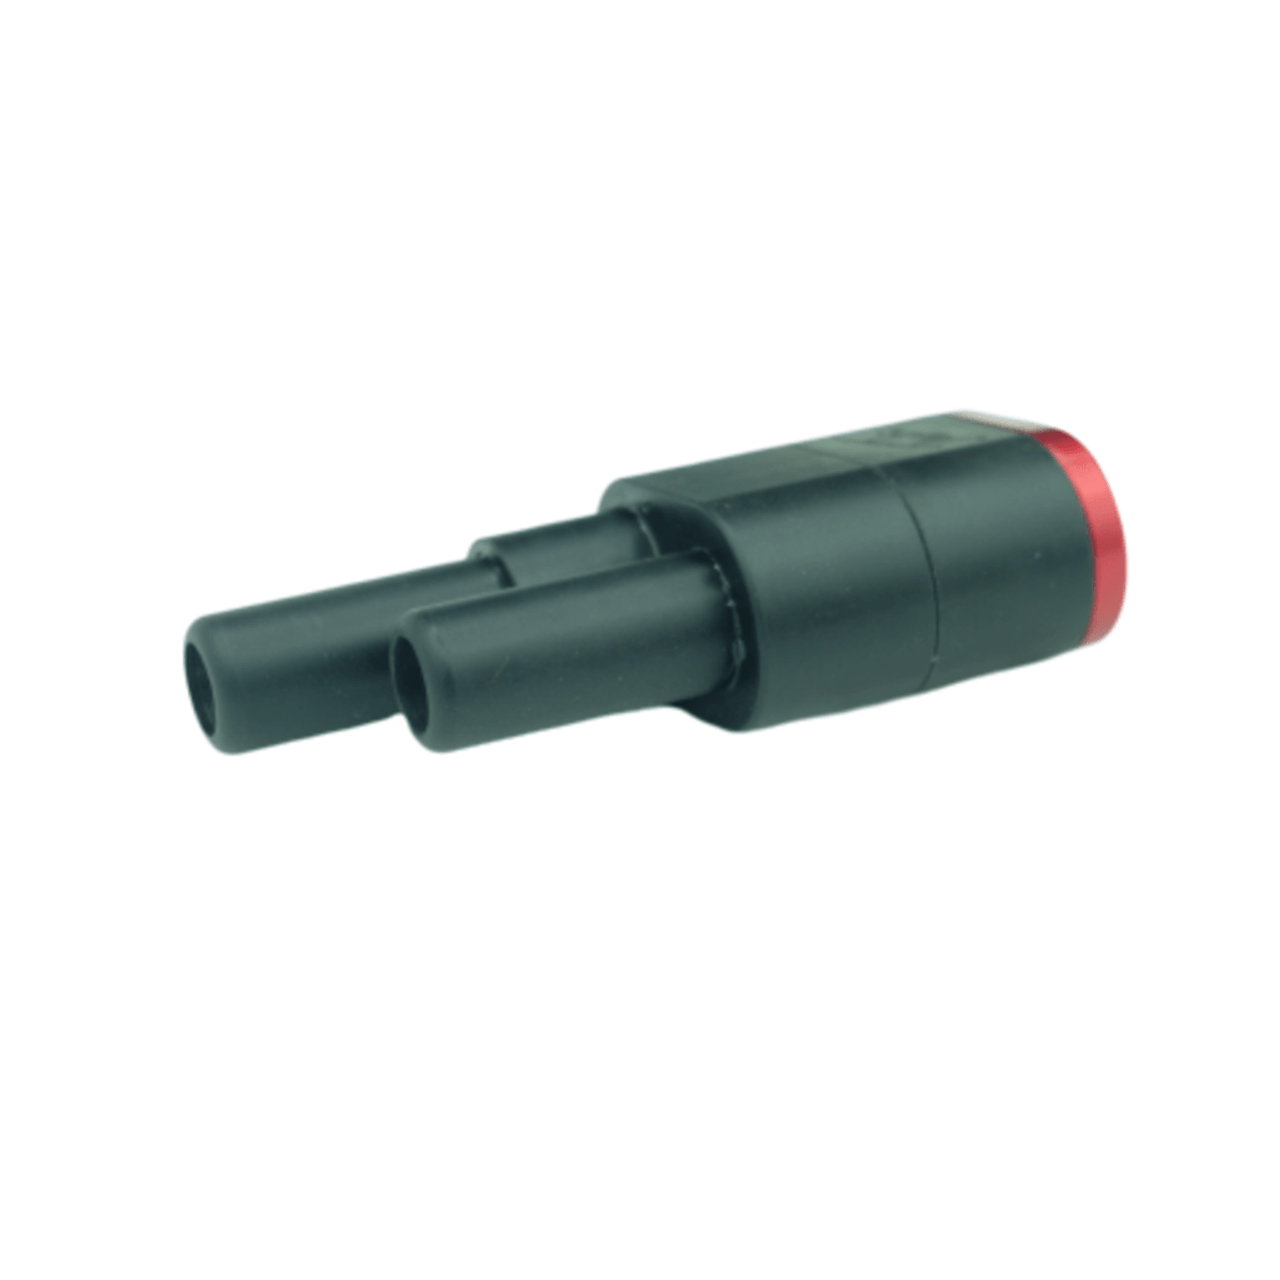 Connector CAT style jump start 2-pin plug